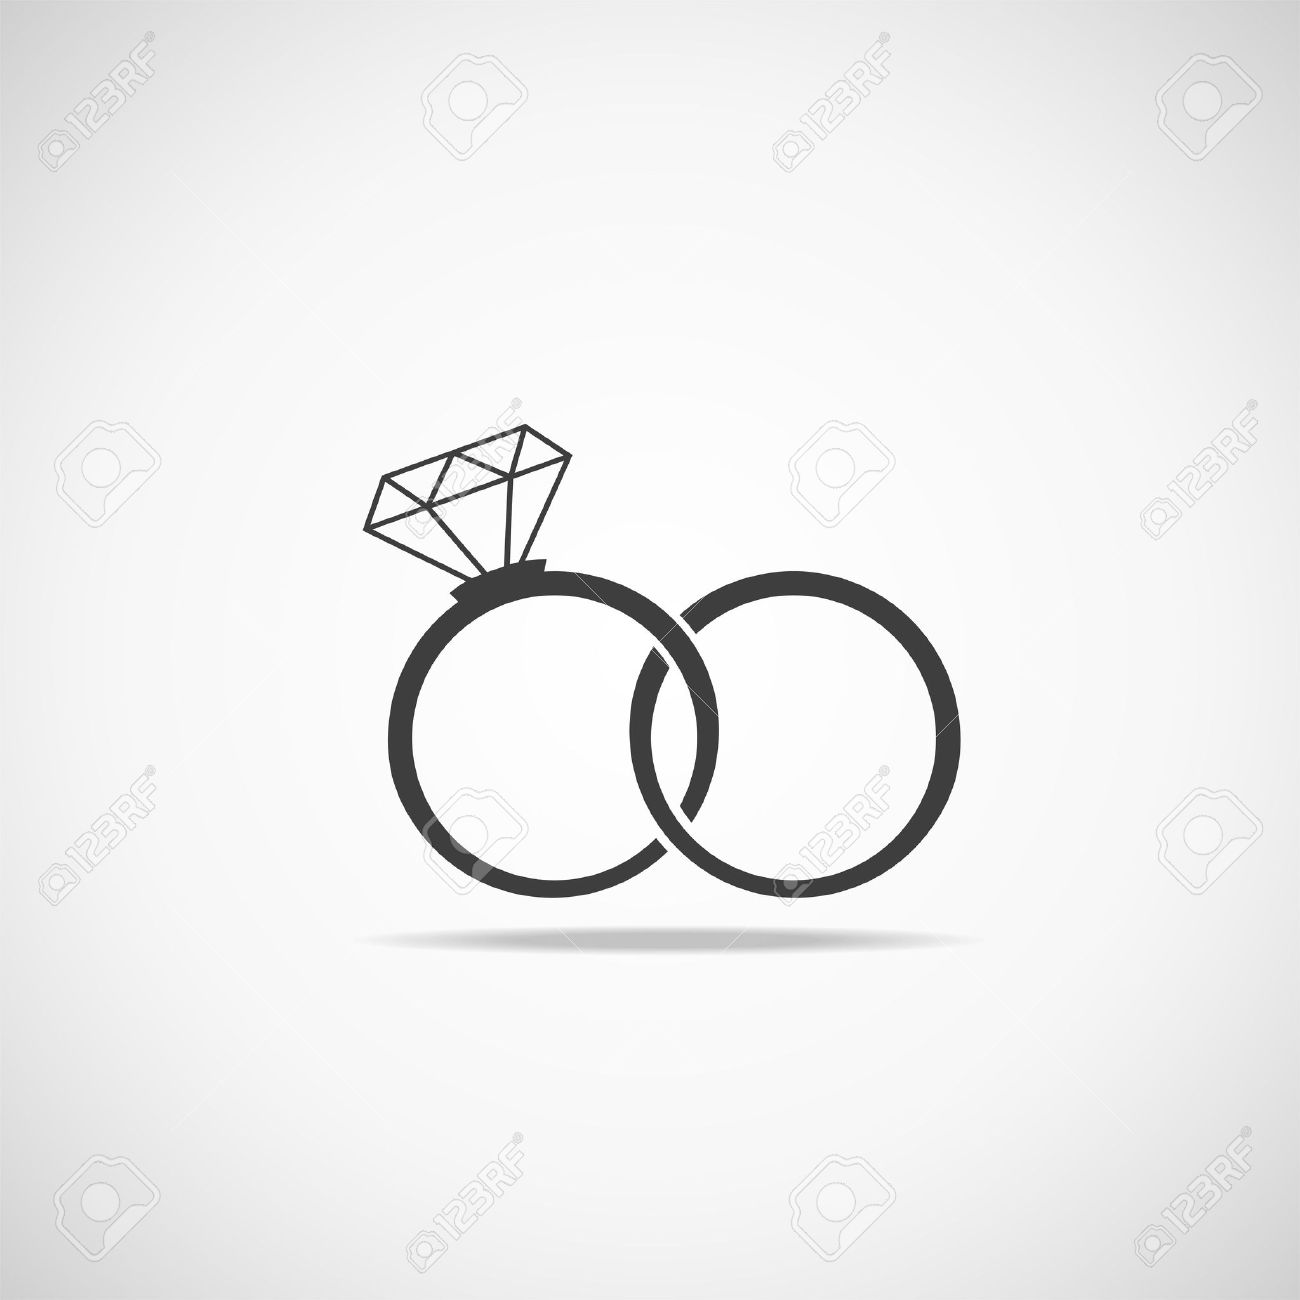 Wedding Rings Vector Icon Wedding Invitation Jewelry Royalty Free